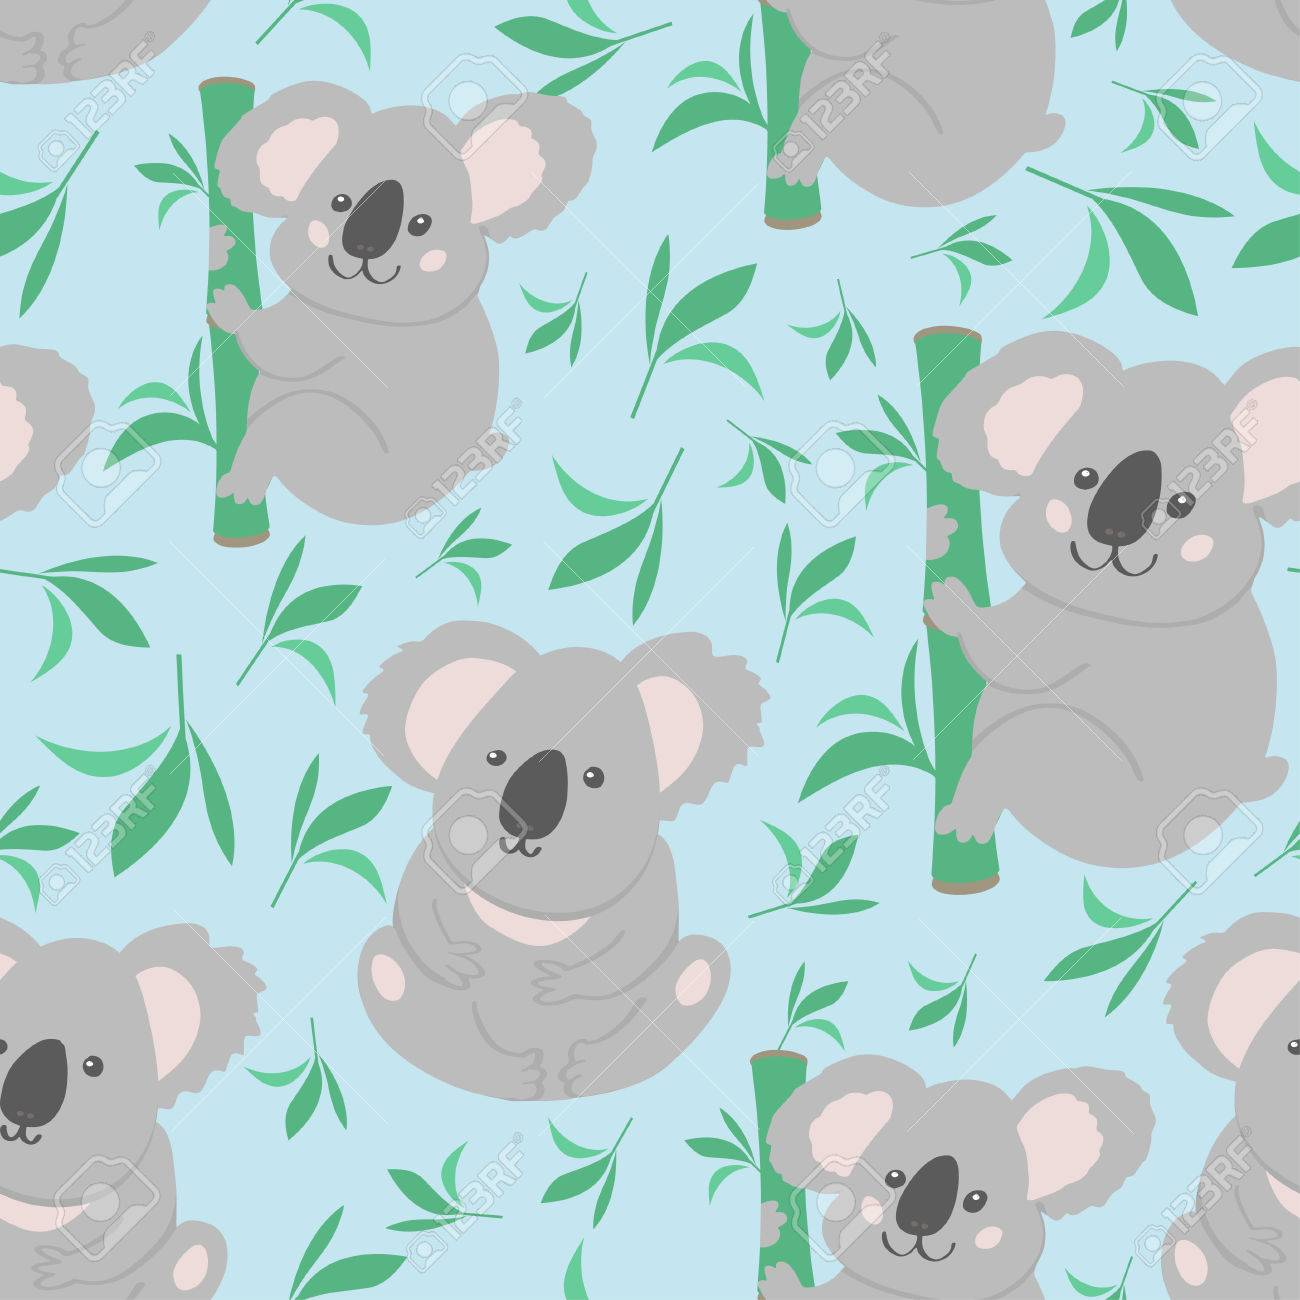 Top Wallpaper Koala Cartoon - 73967276-cute-bear-koala-doodle-seamless-pattern-vector-background-with-koalas-can-be-used-for-baby-taxtile-t  Best Photo Reference_775832   .jpg